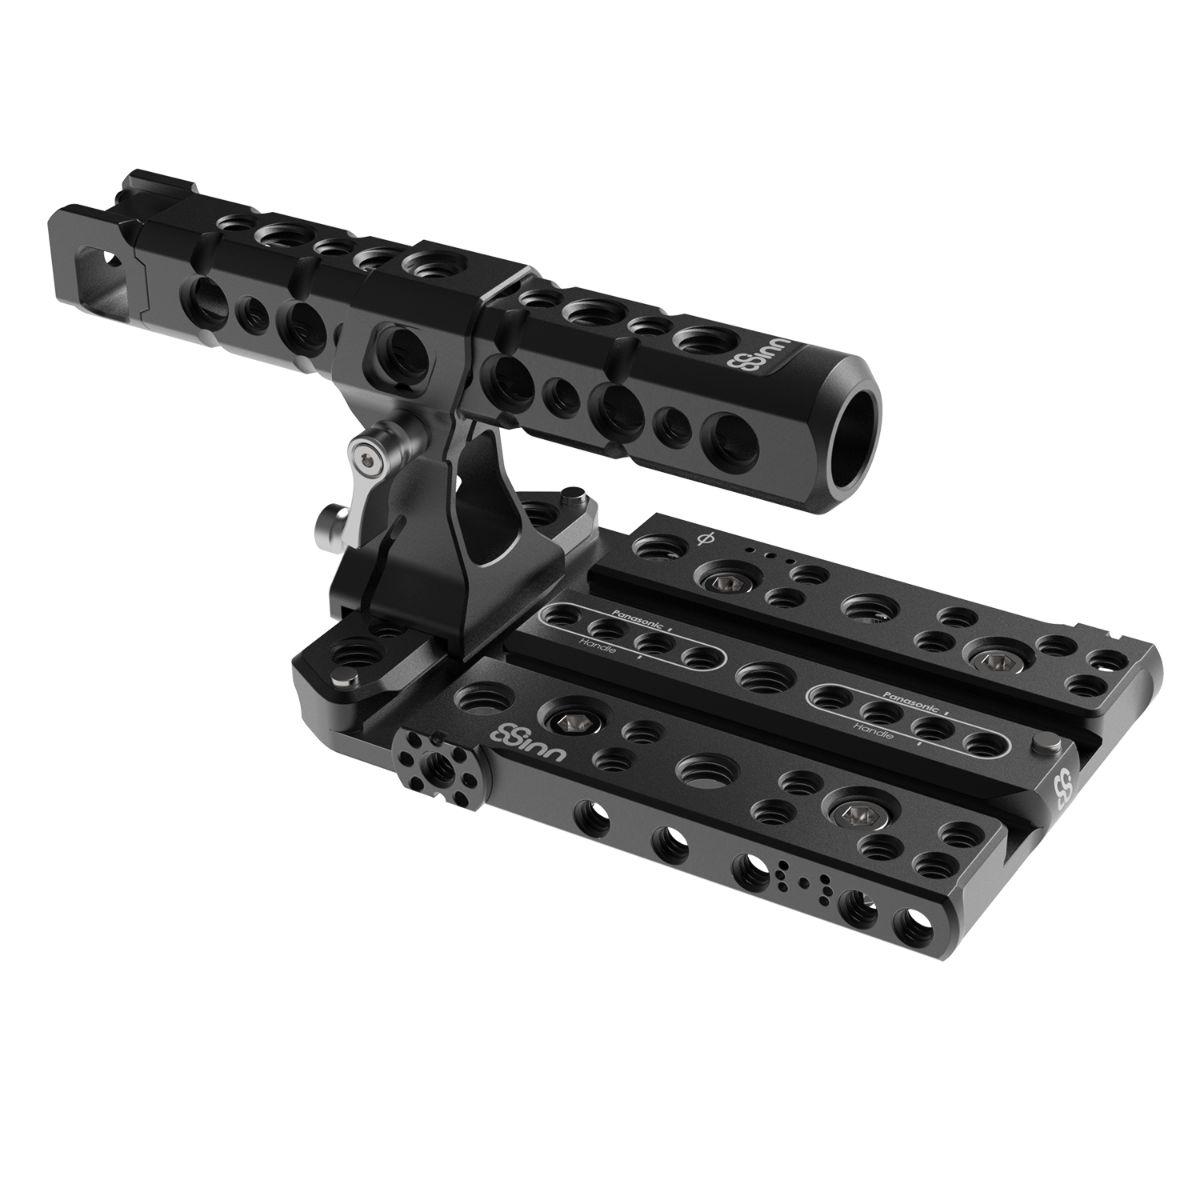 8Sinn Top Plate for Panasonic EVA1 + Top Handle Pro